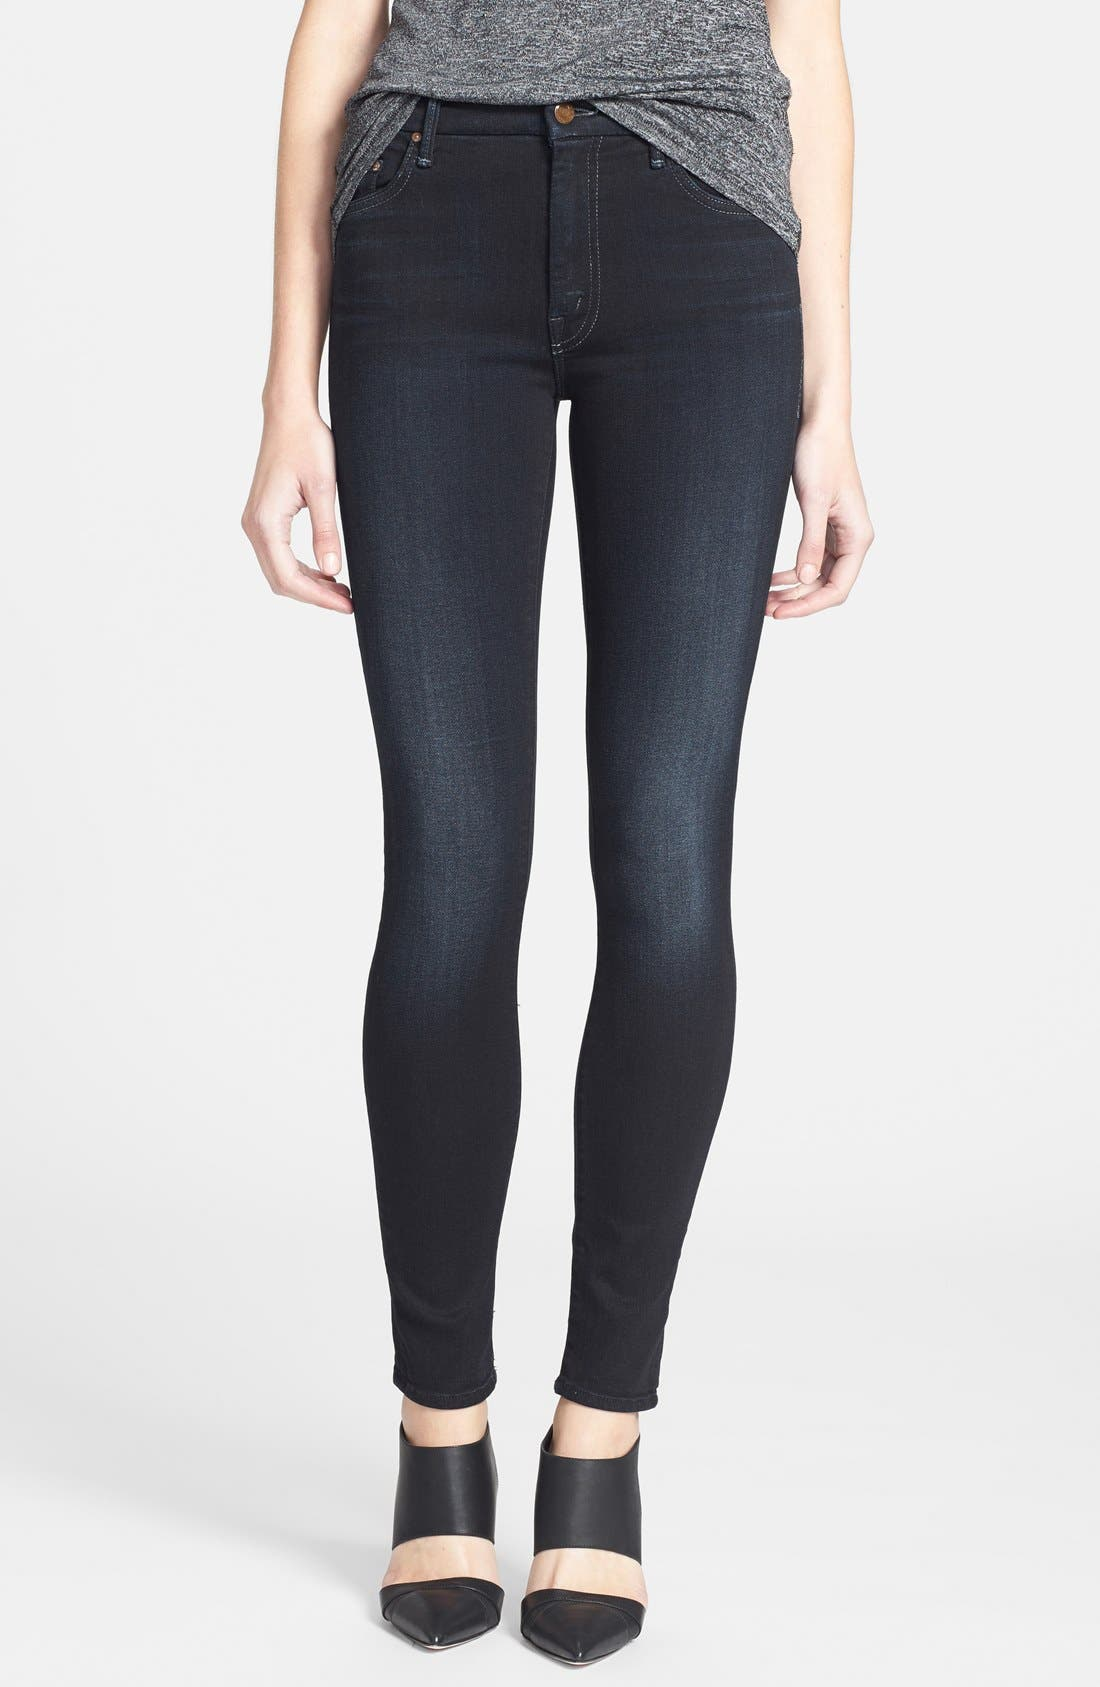 Alternate Image 1 Selected - MOTHER 'The Looker' High Rise Skinny Jeans (Coffee Tea Or Me)